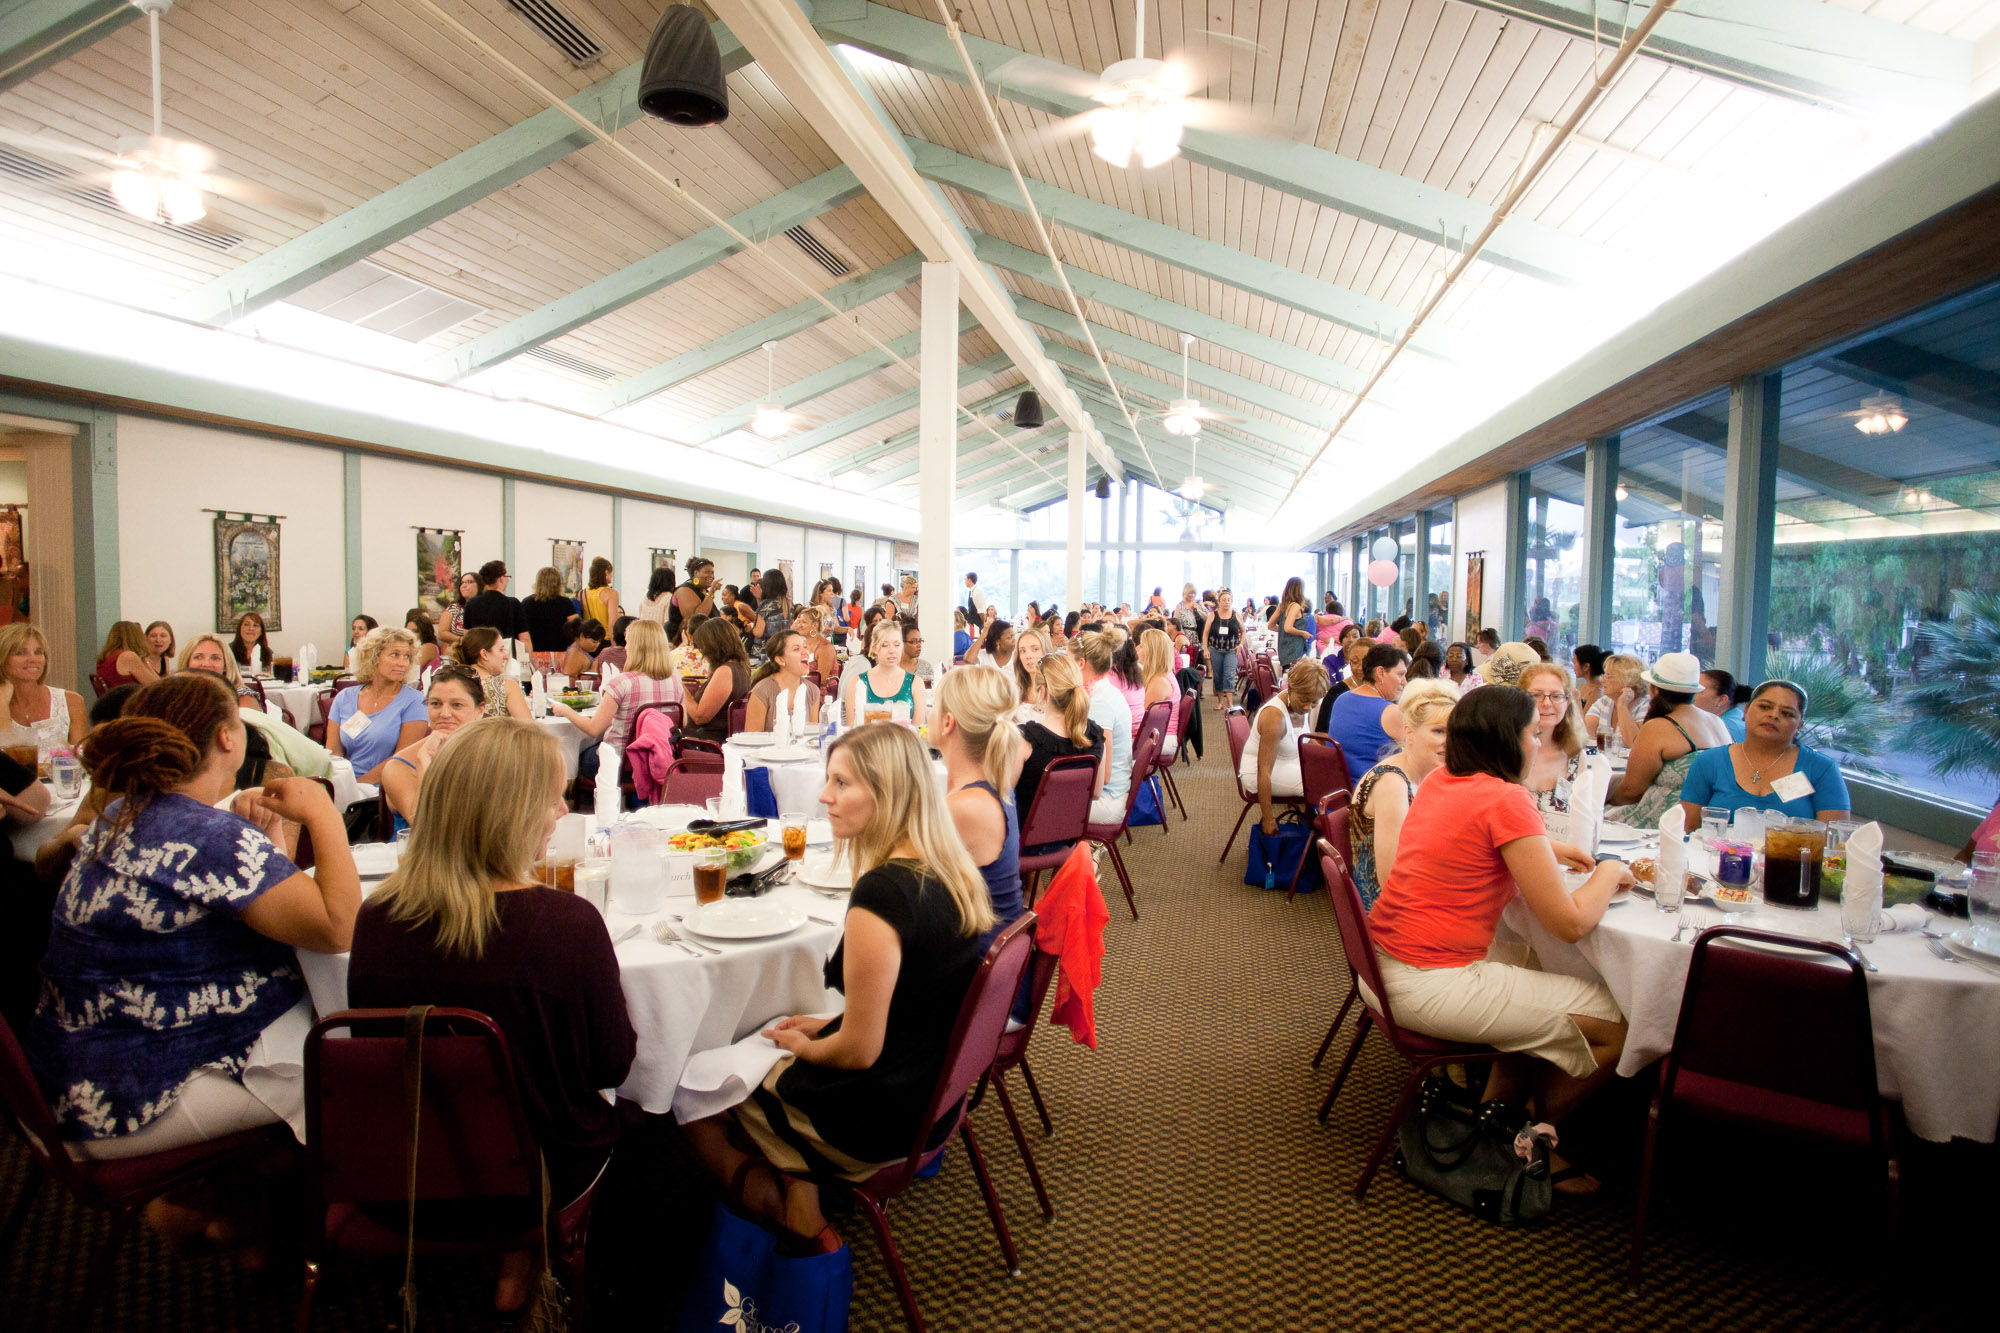 Dining Murrieta Hot Springs Christian Conference Center